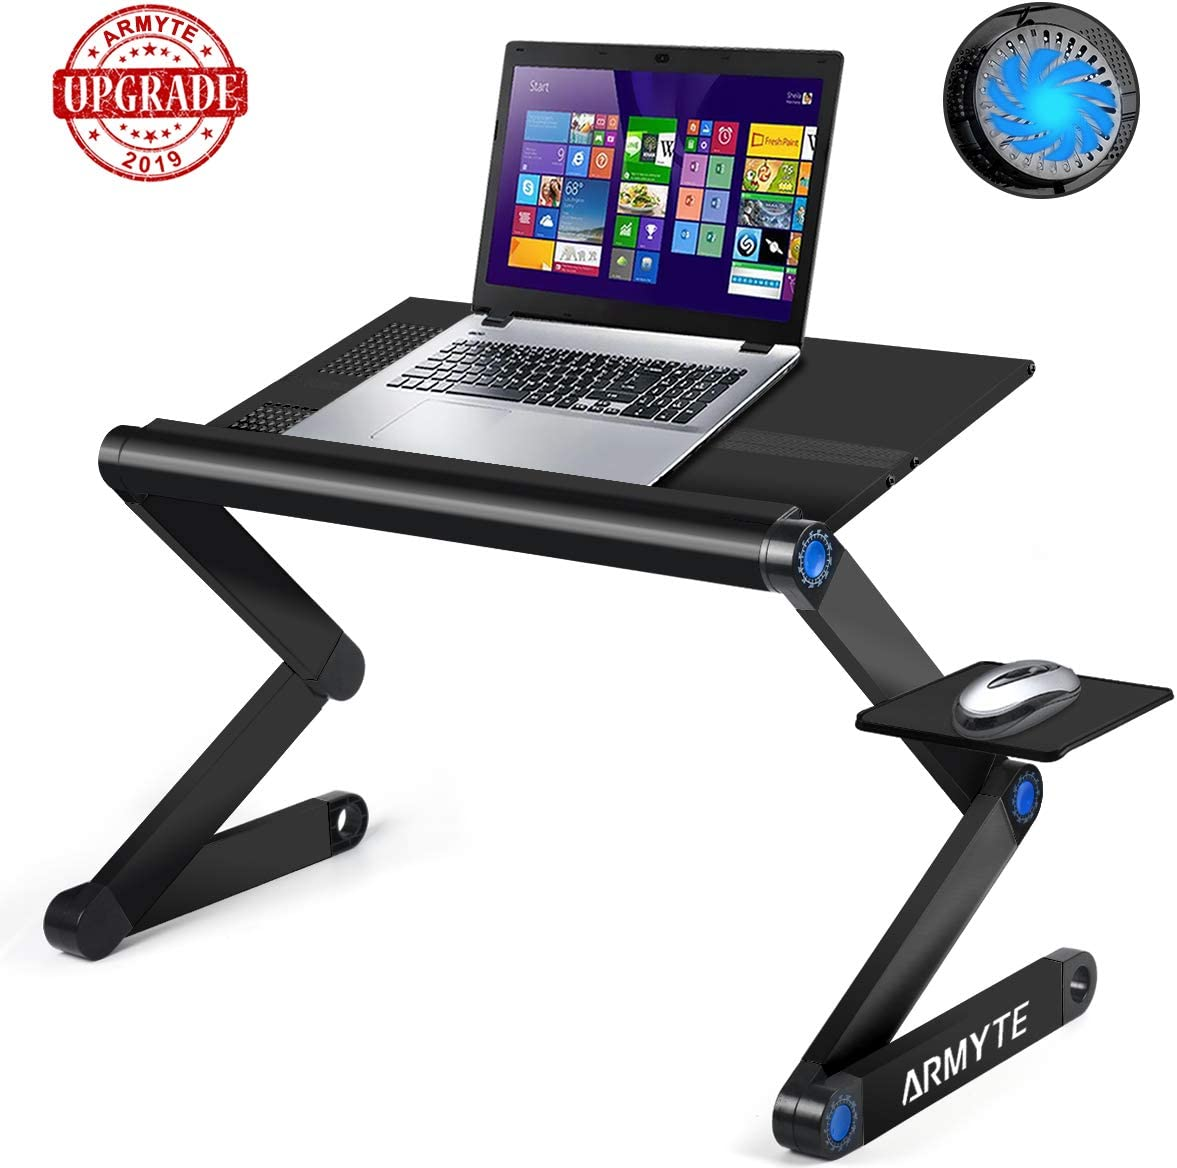 Adjustable Laptop Stand, (2019 Ultra-Large, Upgraded Sturdier) Foldable Aluminum Laptop Desk/Table, Portable Laptop Stand for Bed/Sofa/Desk with Large Cooling Fan & Mouse Pad Side as Gift, Black